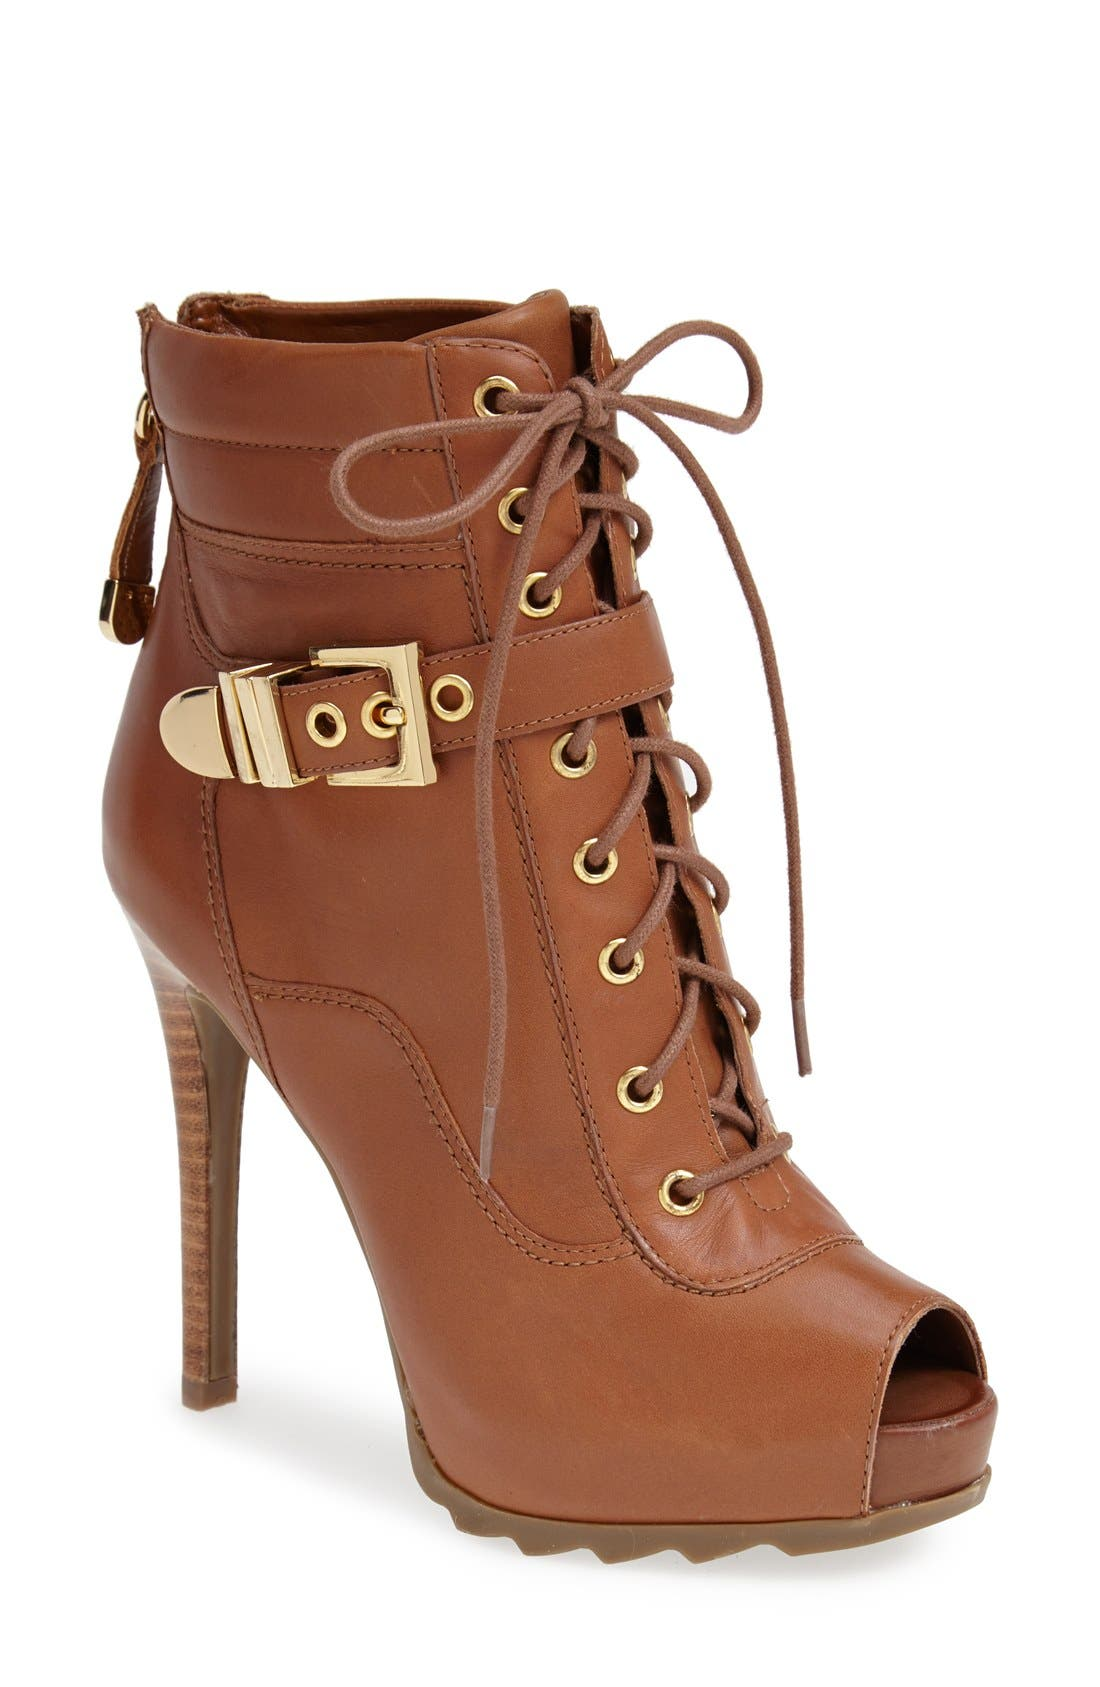 Main Image - GUESS 'Bieinda' Peep Toe Lace-Up Bootie (Women)